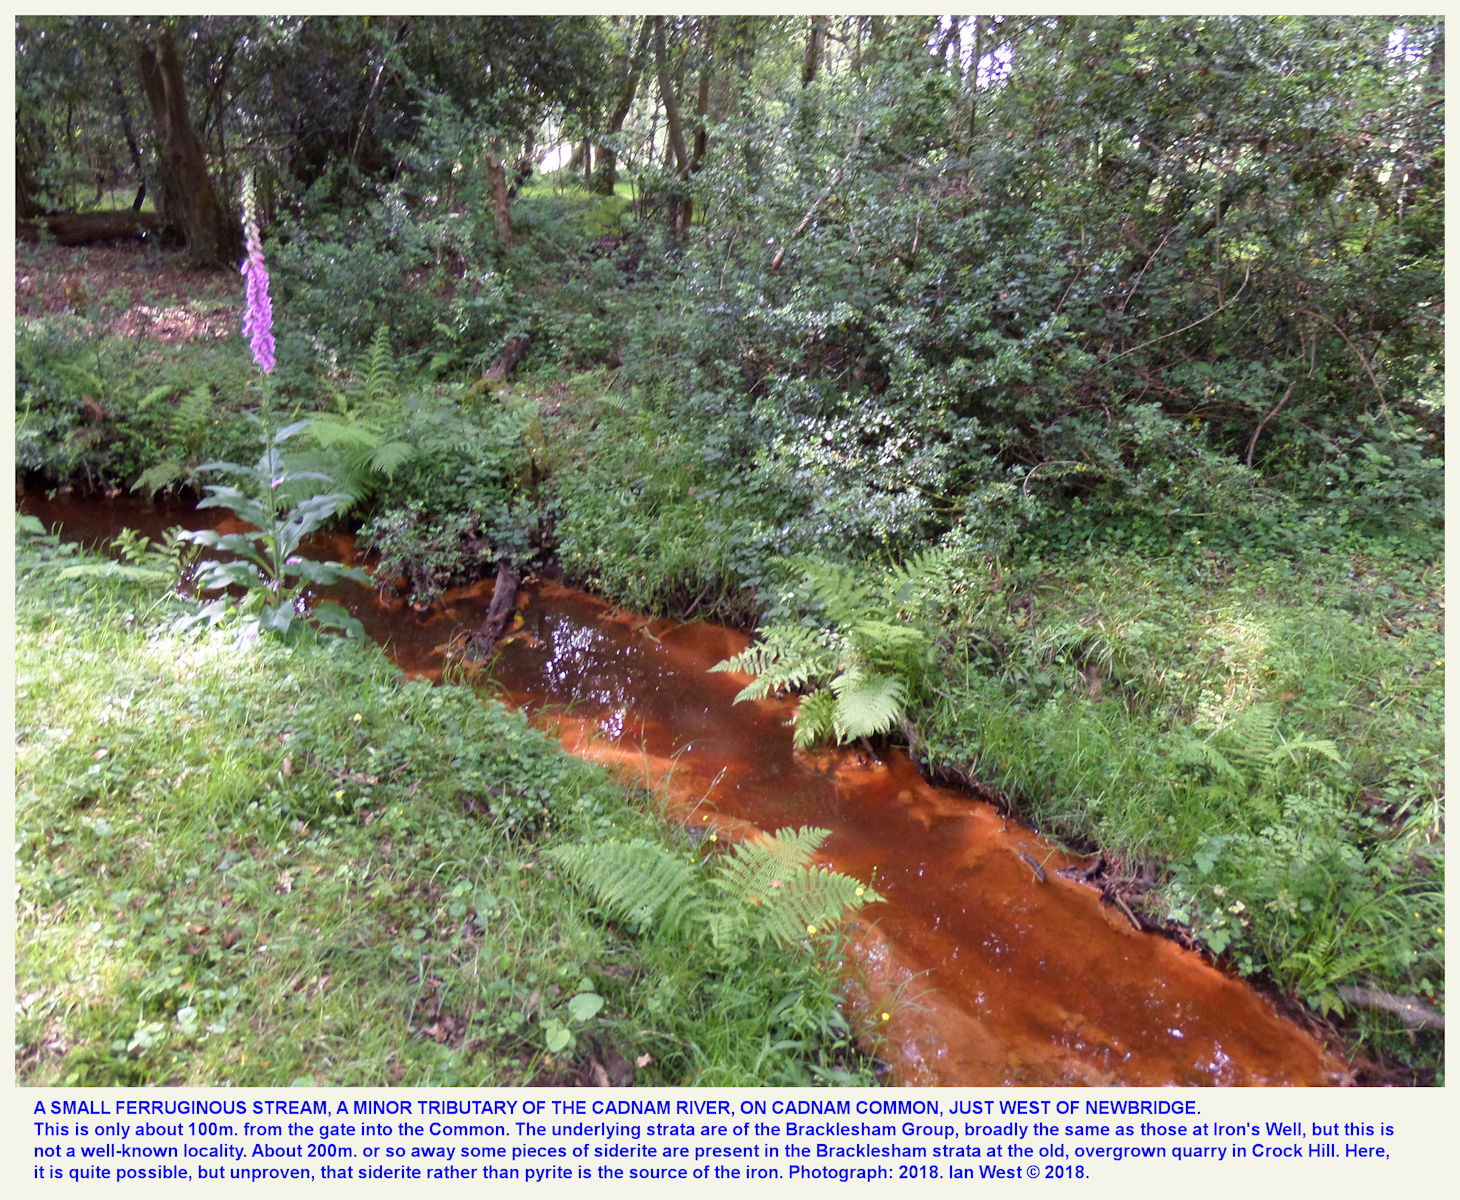 An iron-rich stream near Newbridge, Cadnam Common, New Forest, Hampshire, 2018